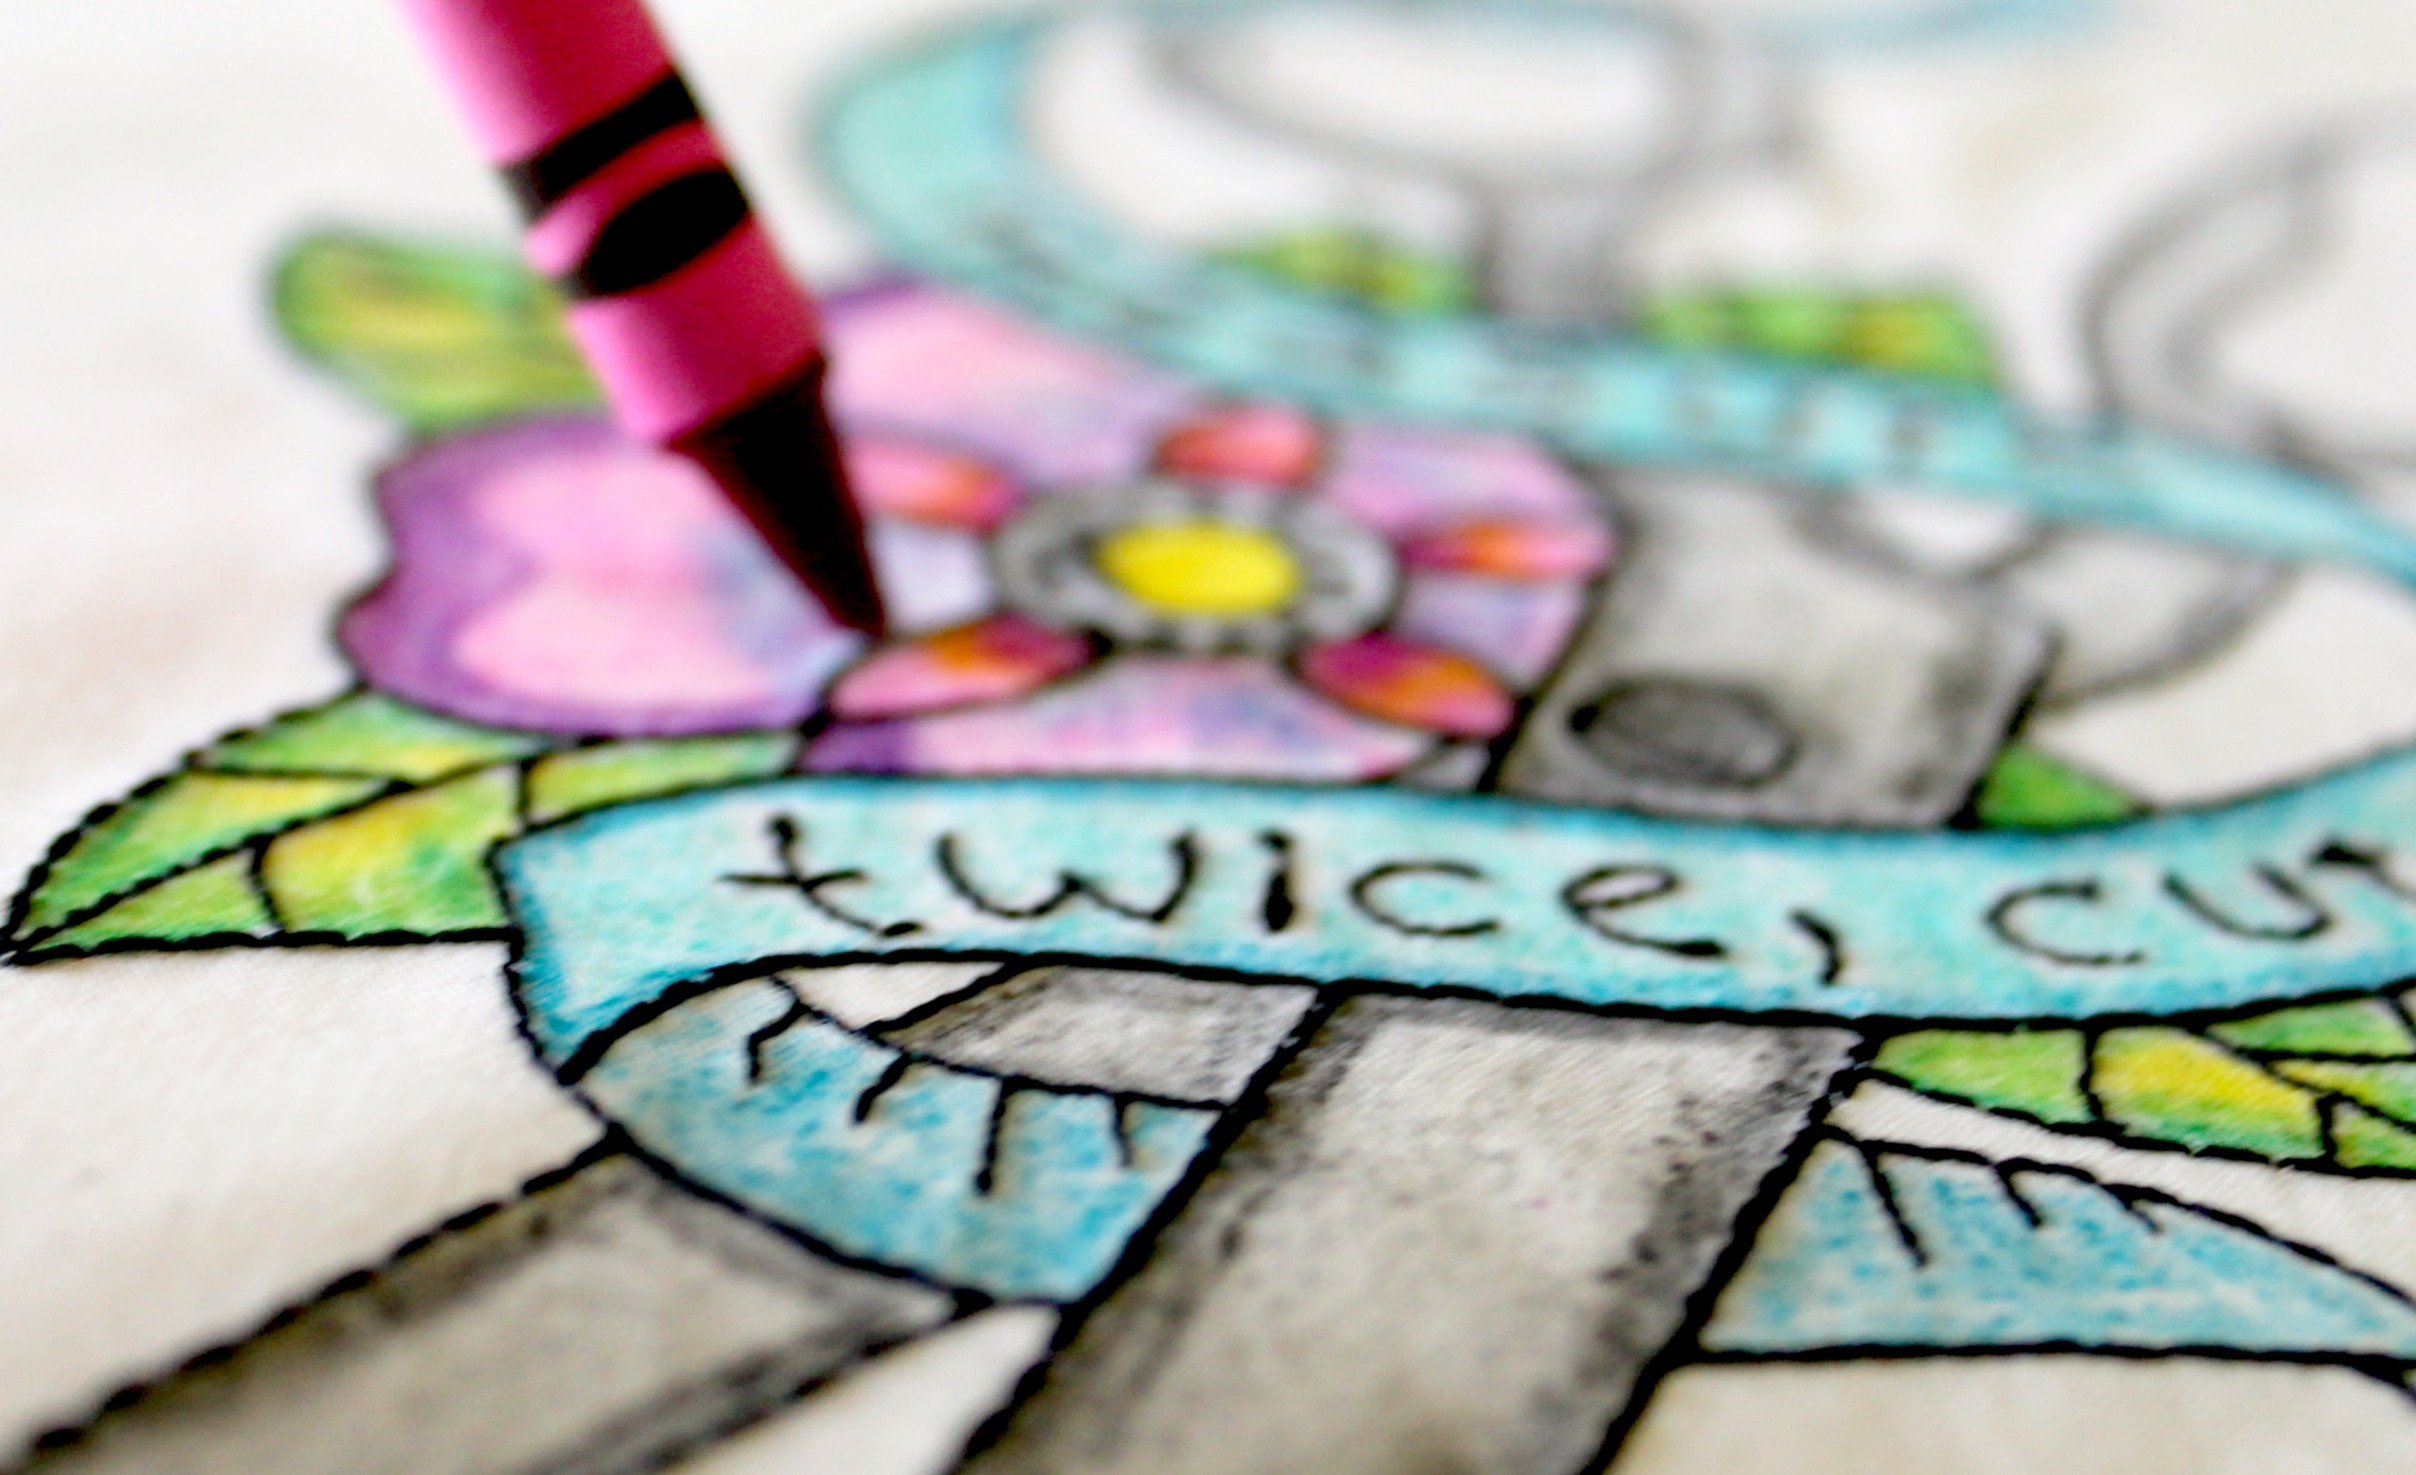 Machine Embroidery And Coloring With Crayons